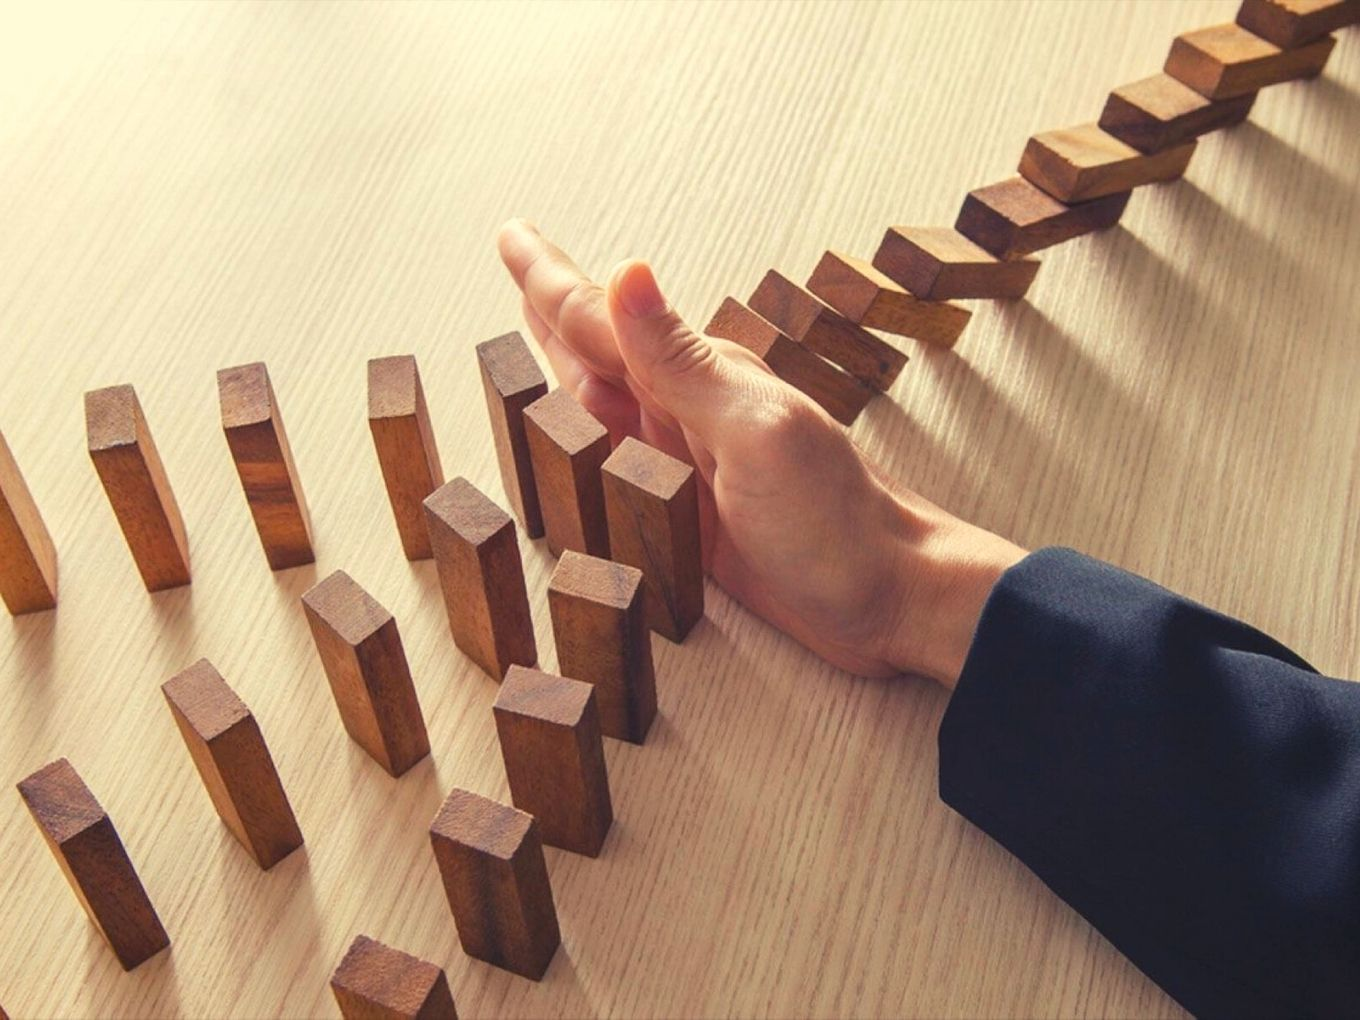 Crisis Management Framework In Startups: Not Too Soon To Begin